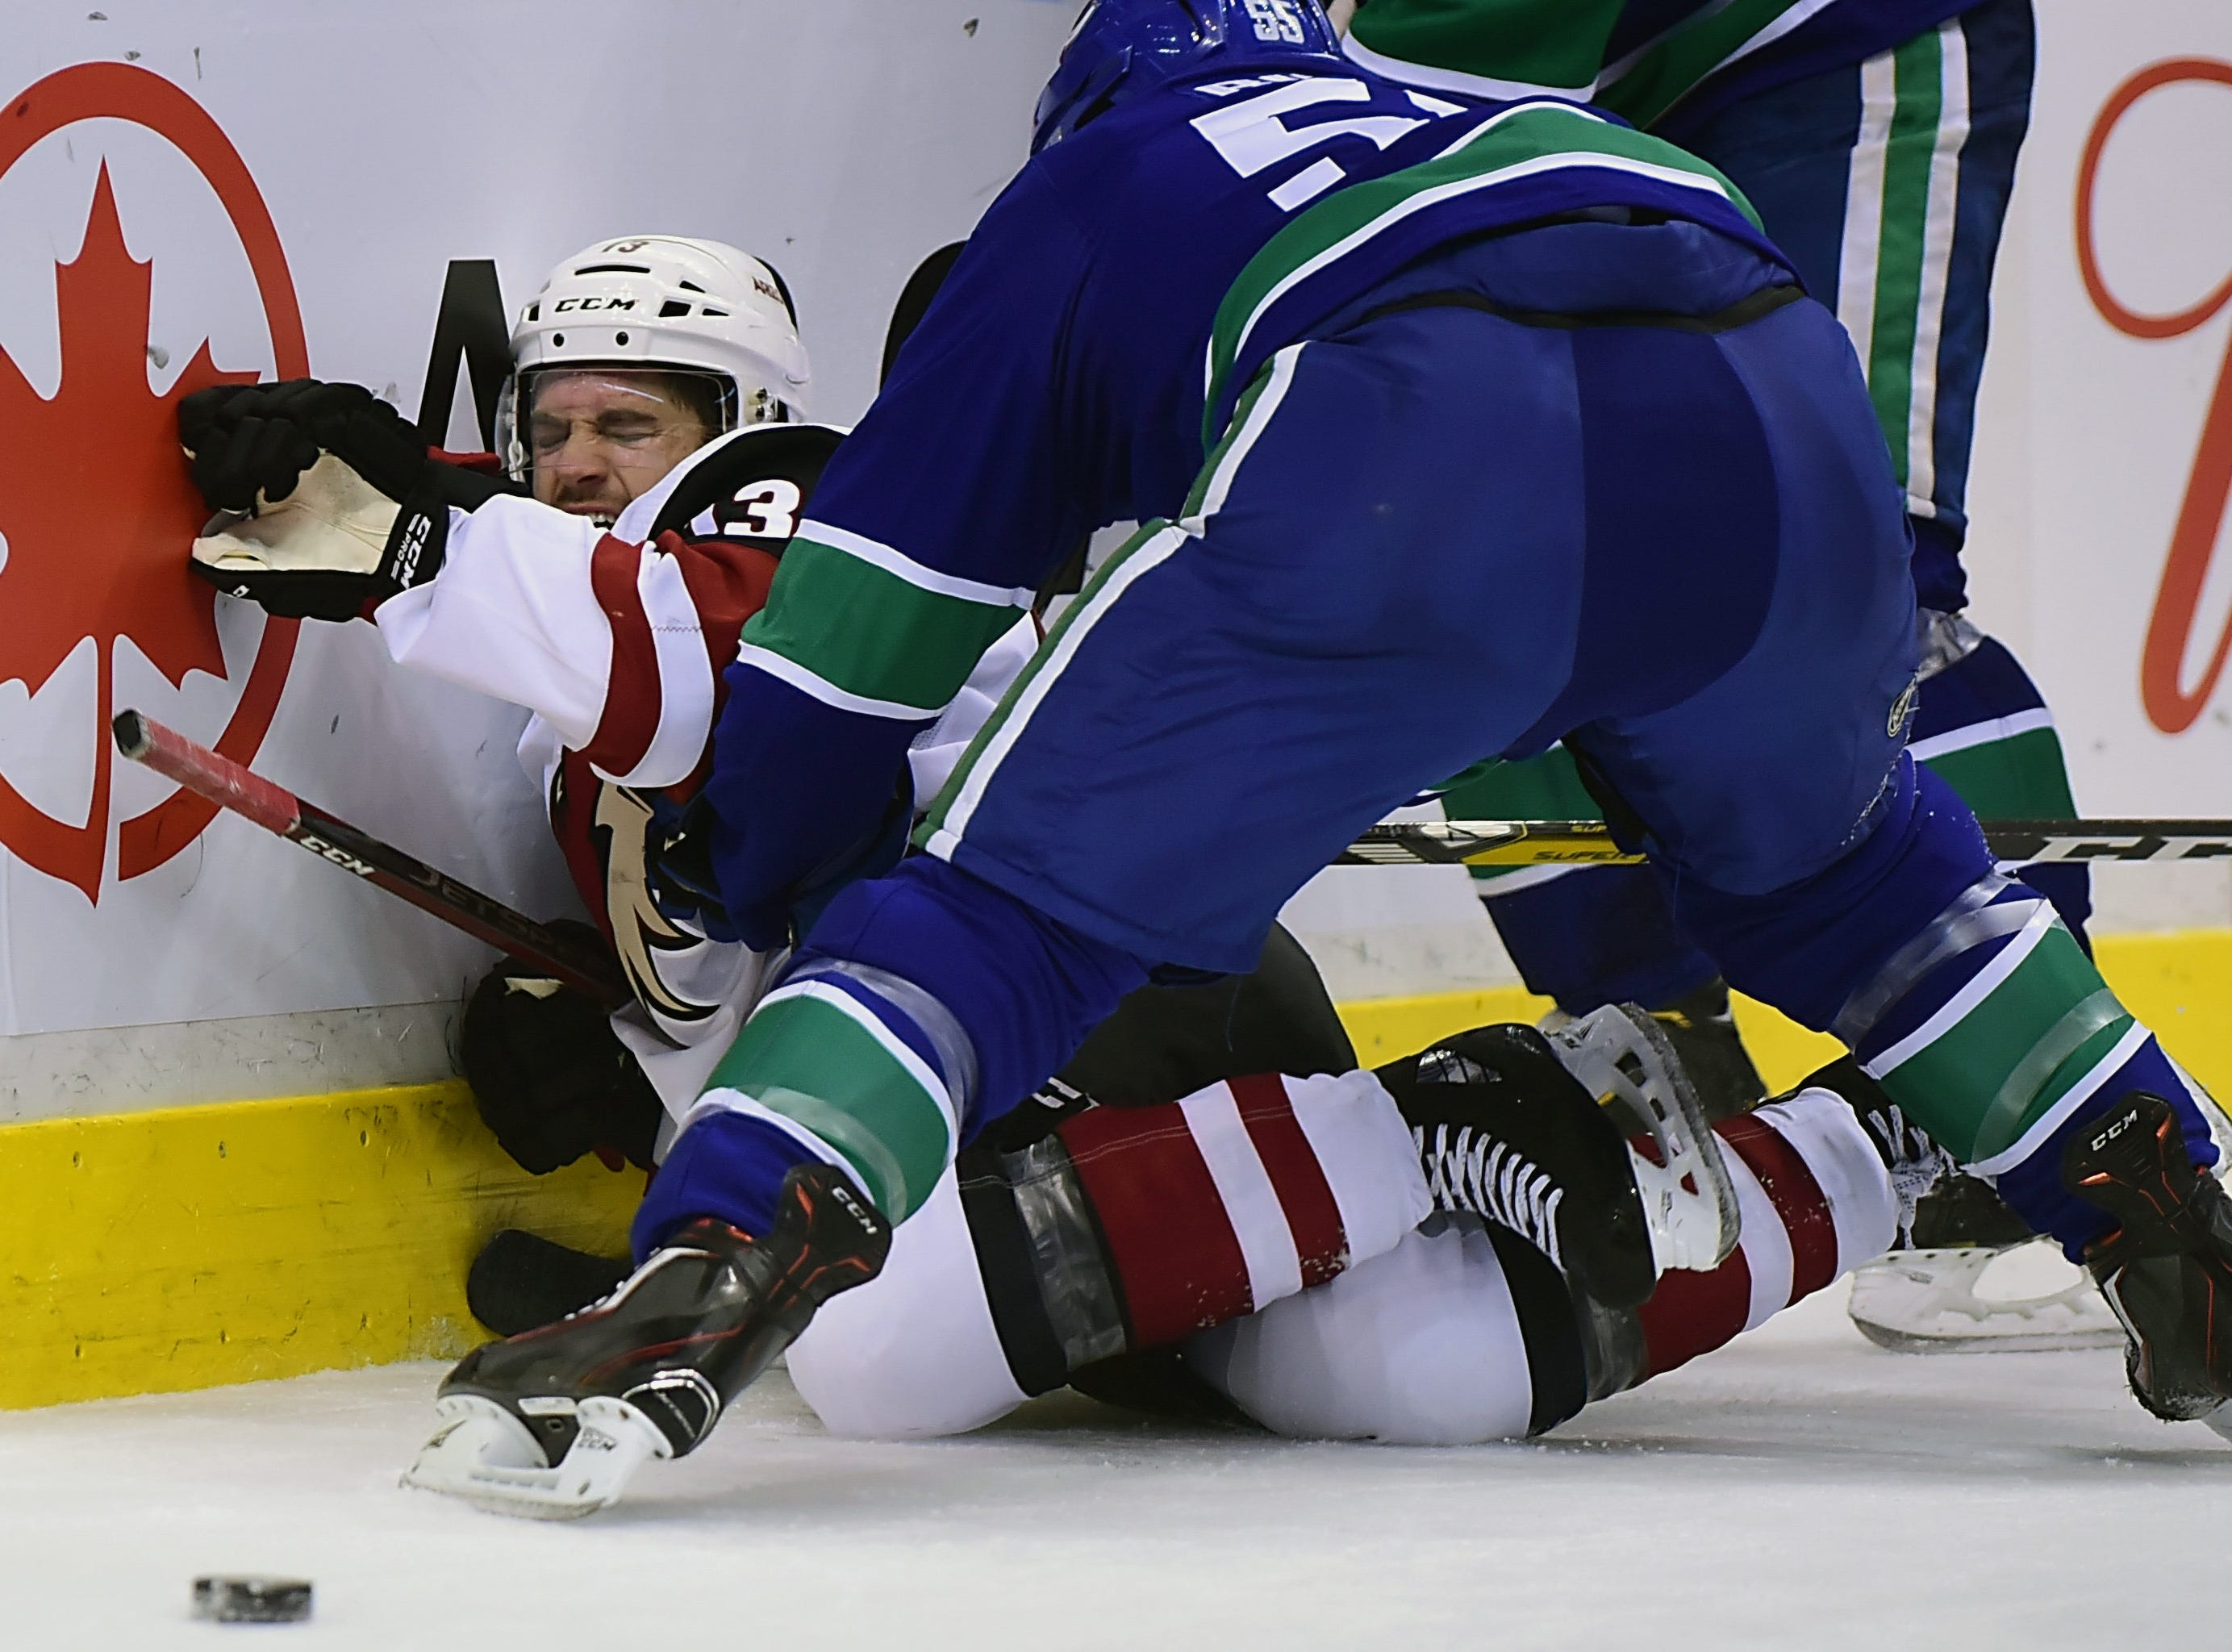 Feb 21, 2019; Vancouver, British Columbia, CAN; Vancouver Canucks defenseman Alex Biega (55) checks Arizona Coyotes forward Vinnie Hinostroza (13) during the second period at Rogers Arena. Mandatory Credit: Anne-Marie Sorvin-USA TODAY Sports